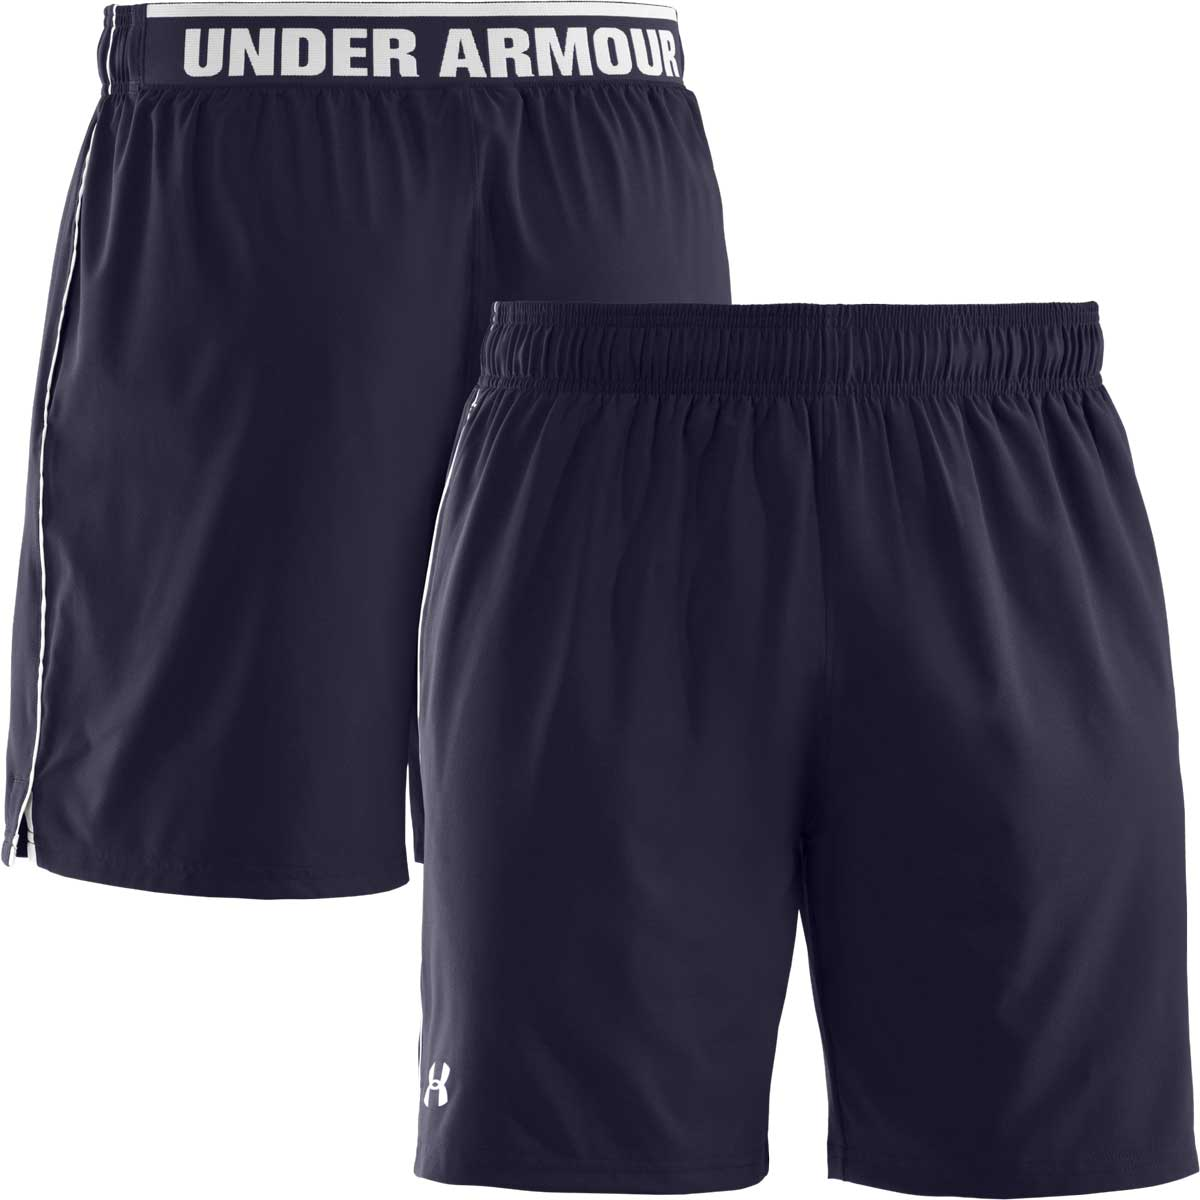 Under Armour Short Heatgear Blu Uomo